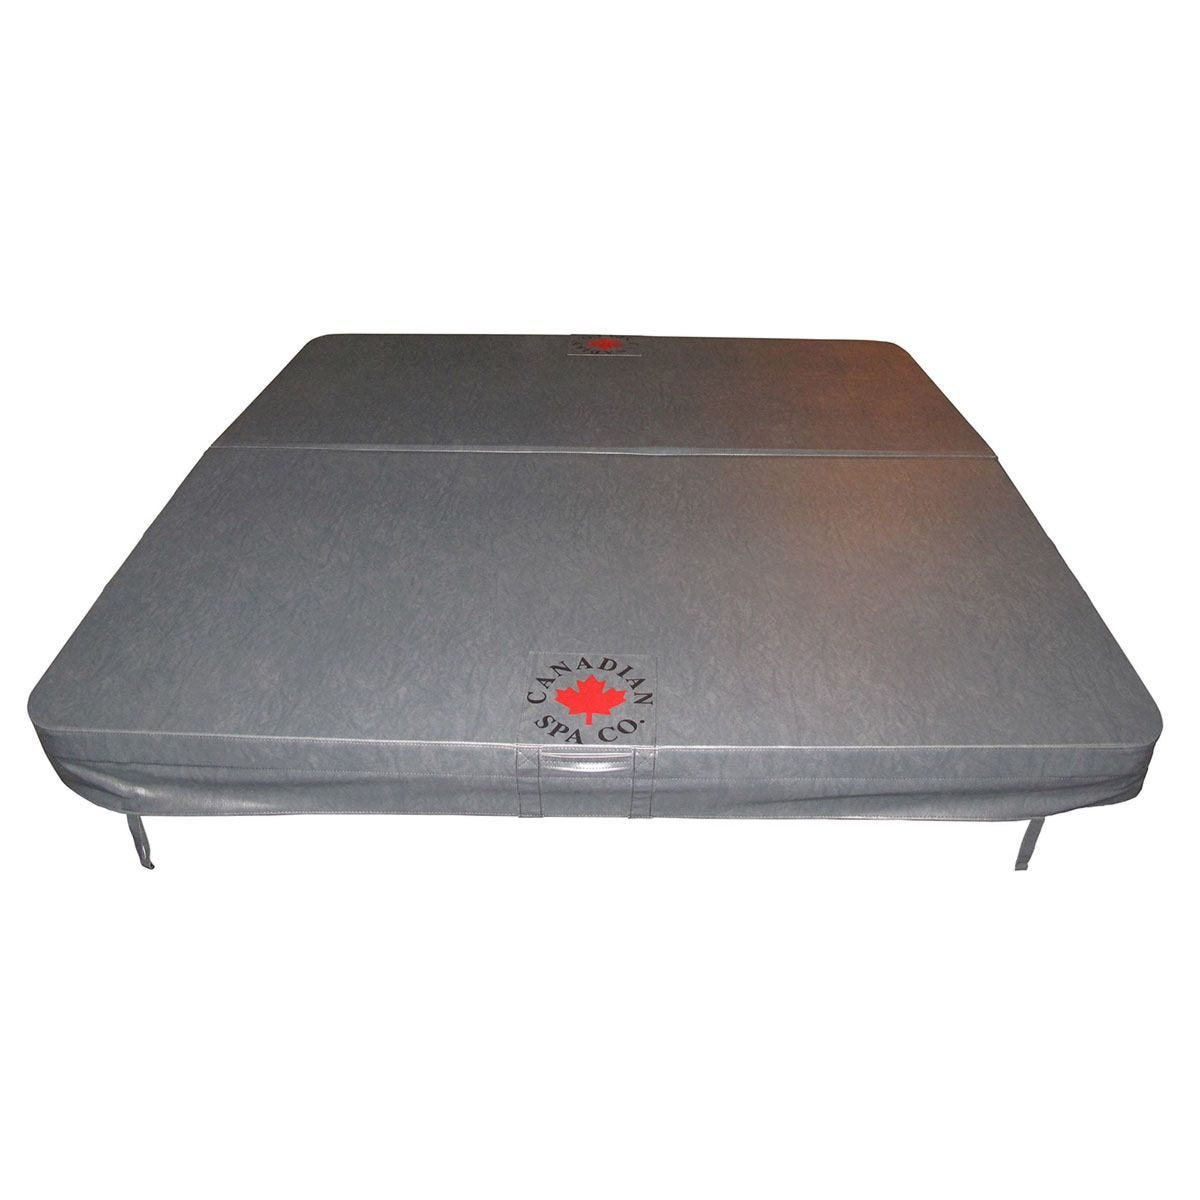 Canadian Spa Hot Tub Cover - Grey